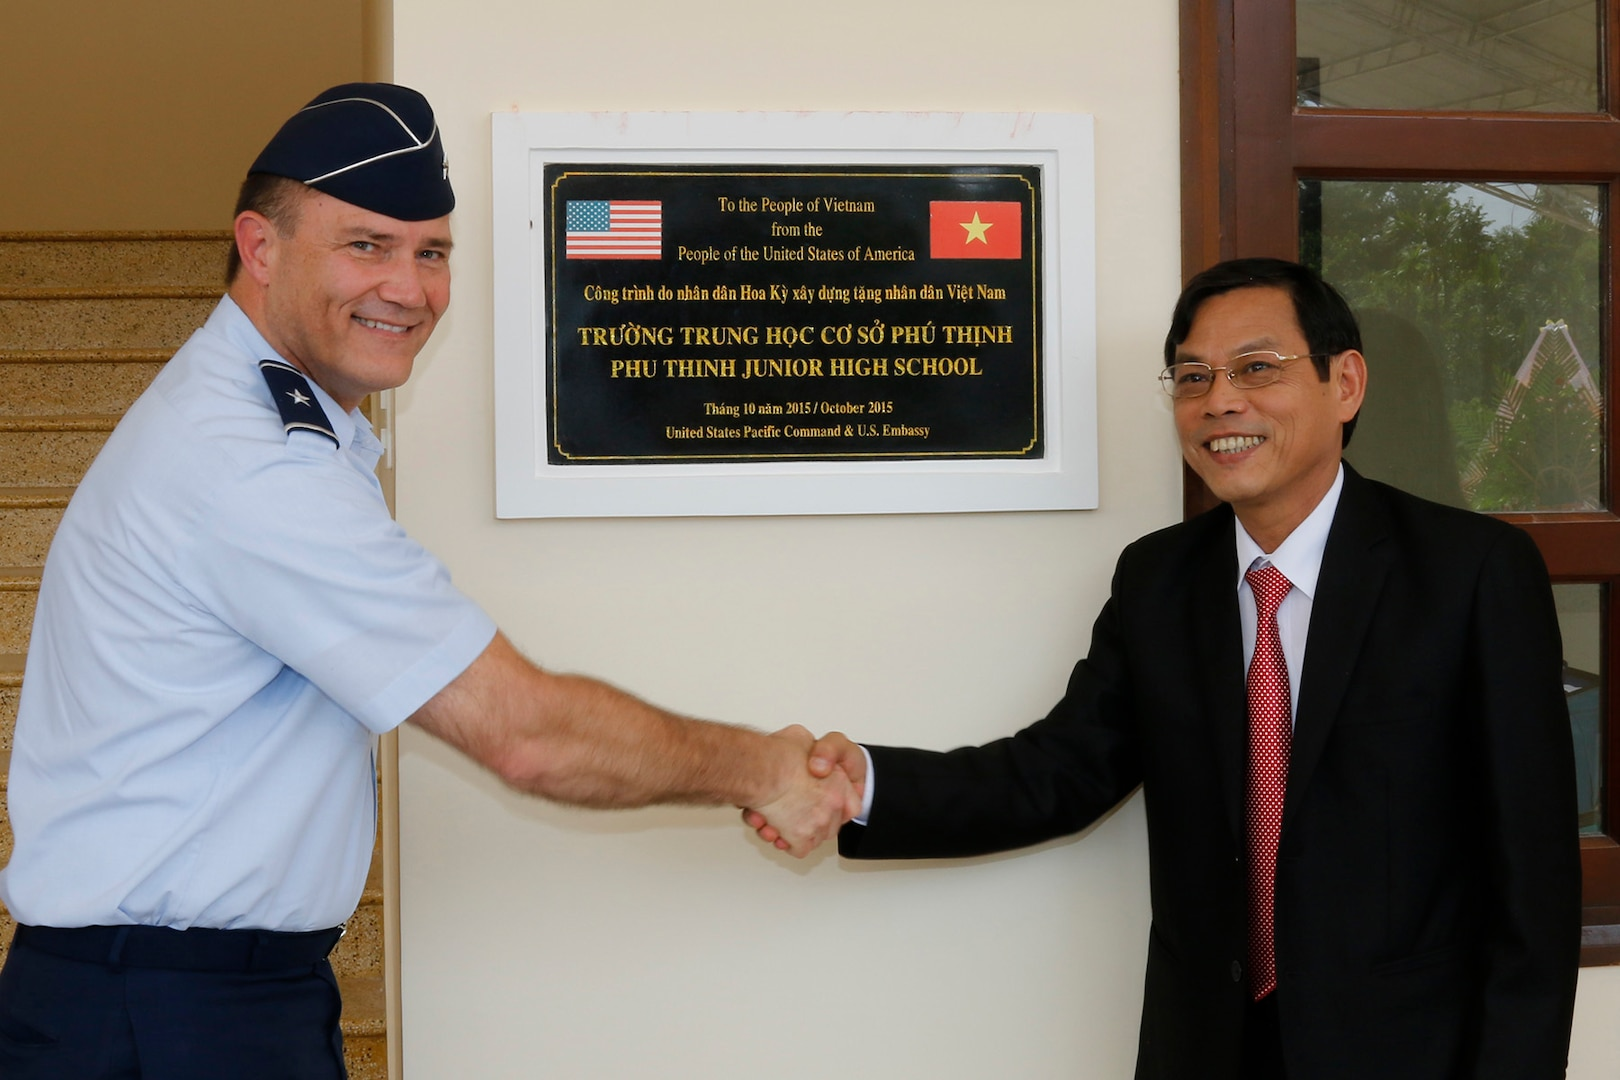 Brig. Gen. Michael E. Stencel, adjutant general, Oregon, and Nguyen Chin, Deputy Chairman of the Quang Nam Provincial People's Committee, unveil a plaque memorializing U.S. and Vietnamese cooperation in building a new intermediate school in Phu Tinh Village in the Quang Nam Province of Vietnam, Oct. 21, 2015. The new school was built in cooperation between the U.S. and Vietnam and has a secondary use as a shelter during natural disasters.